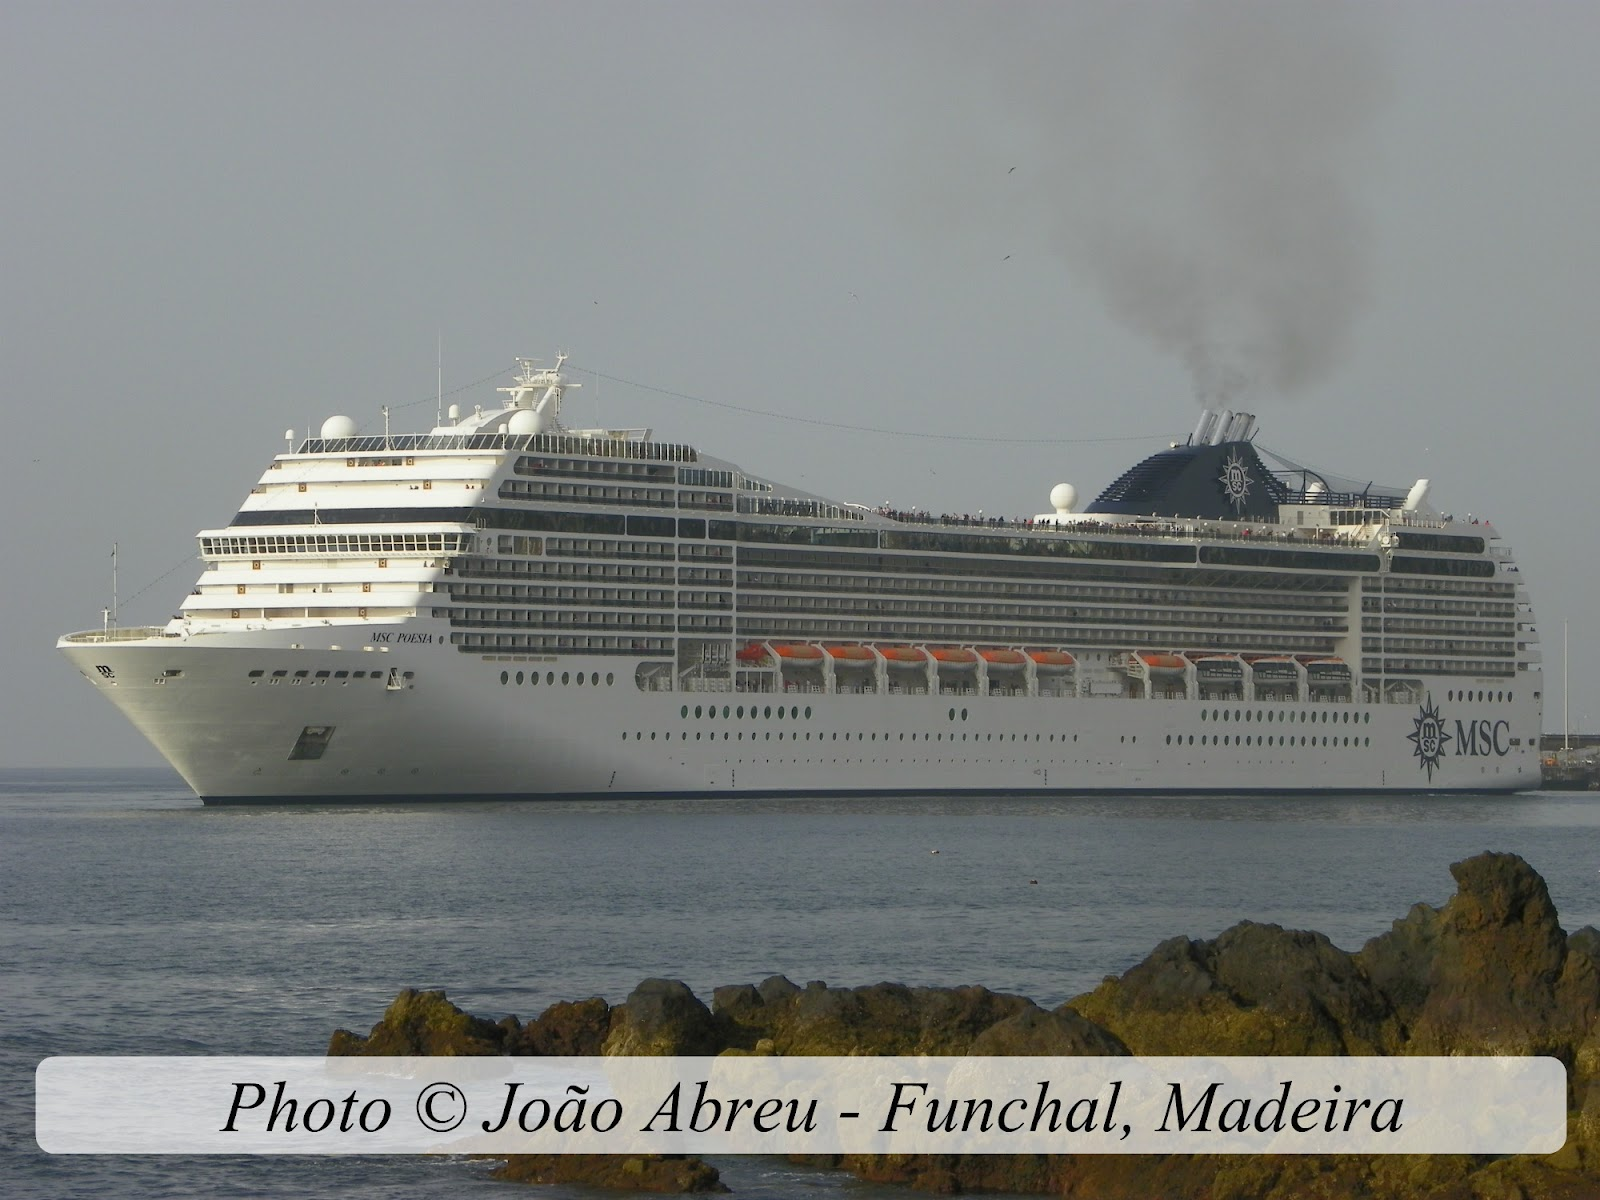 CRUISE SHIPS AND LINERS: MSC POESIA underway in Funchal